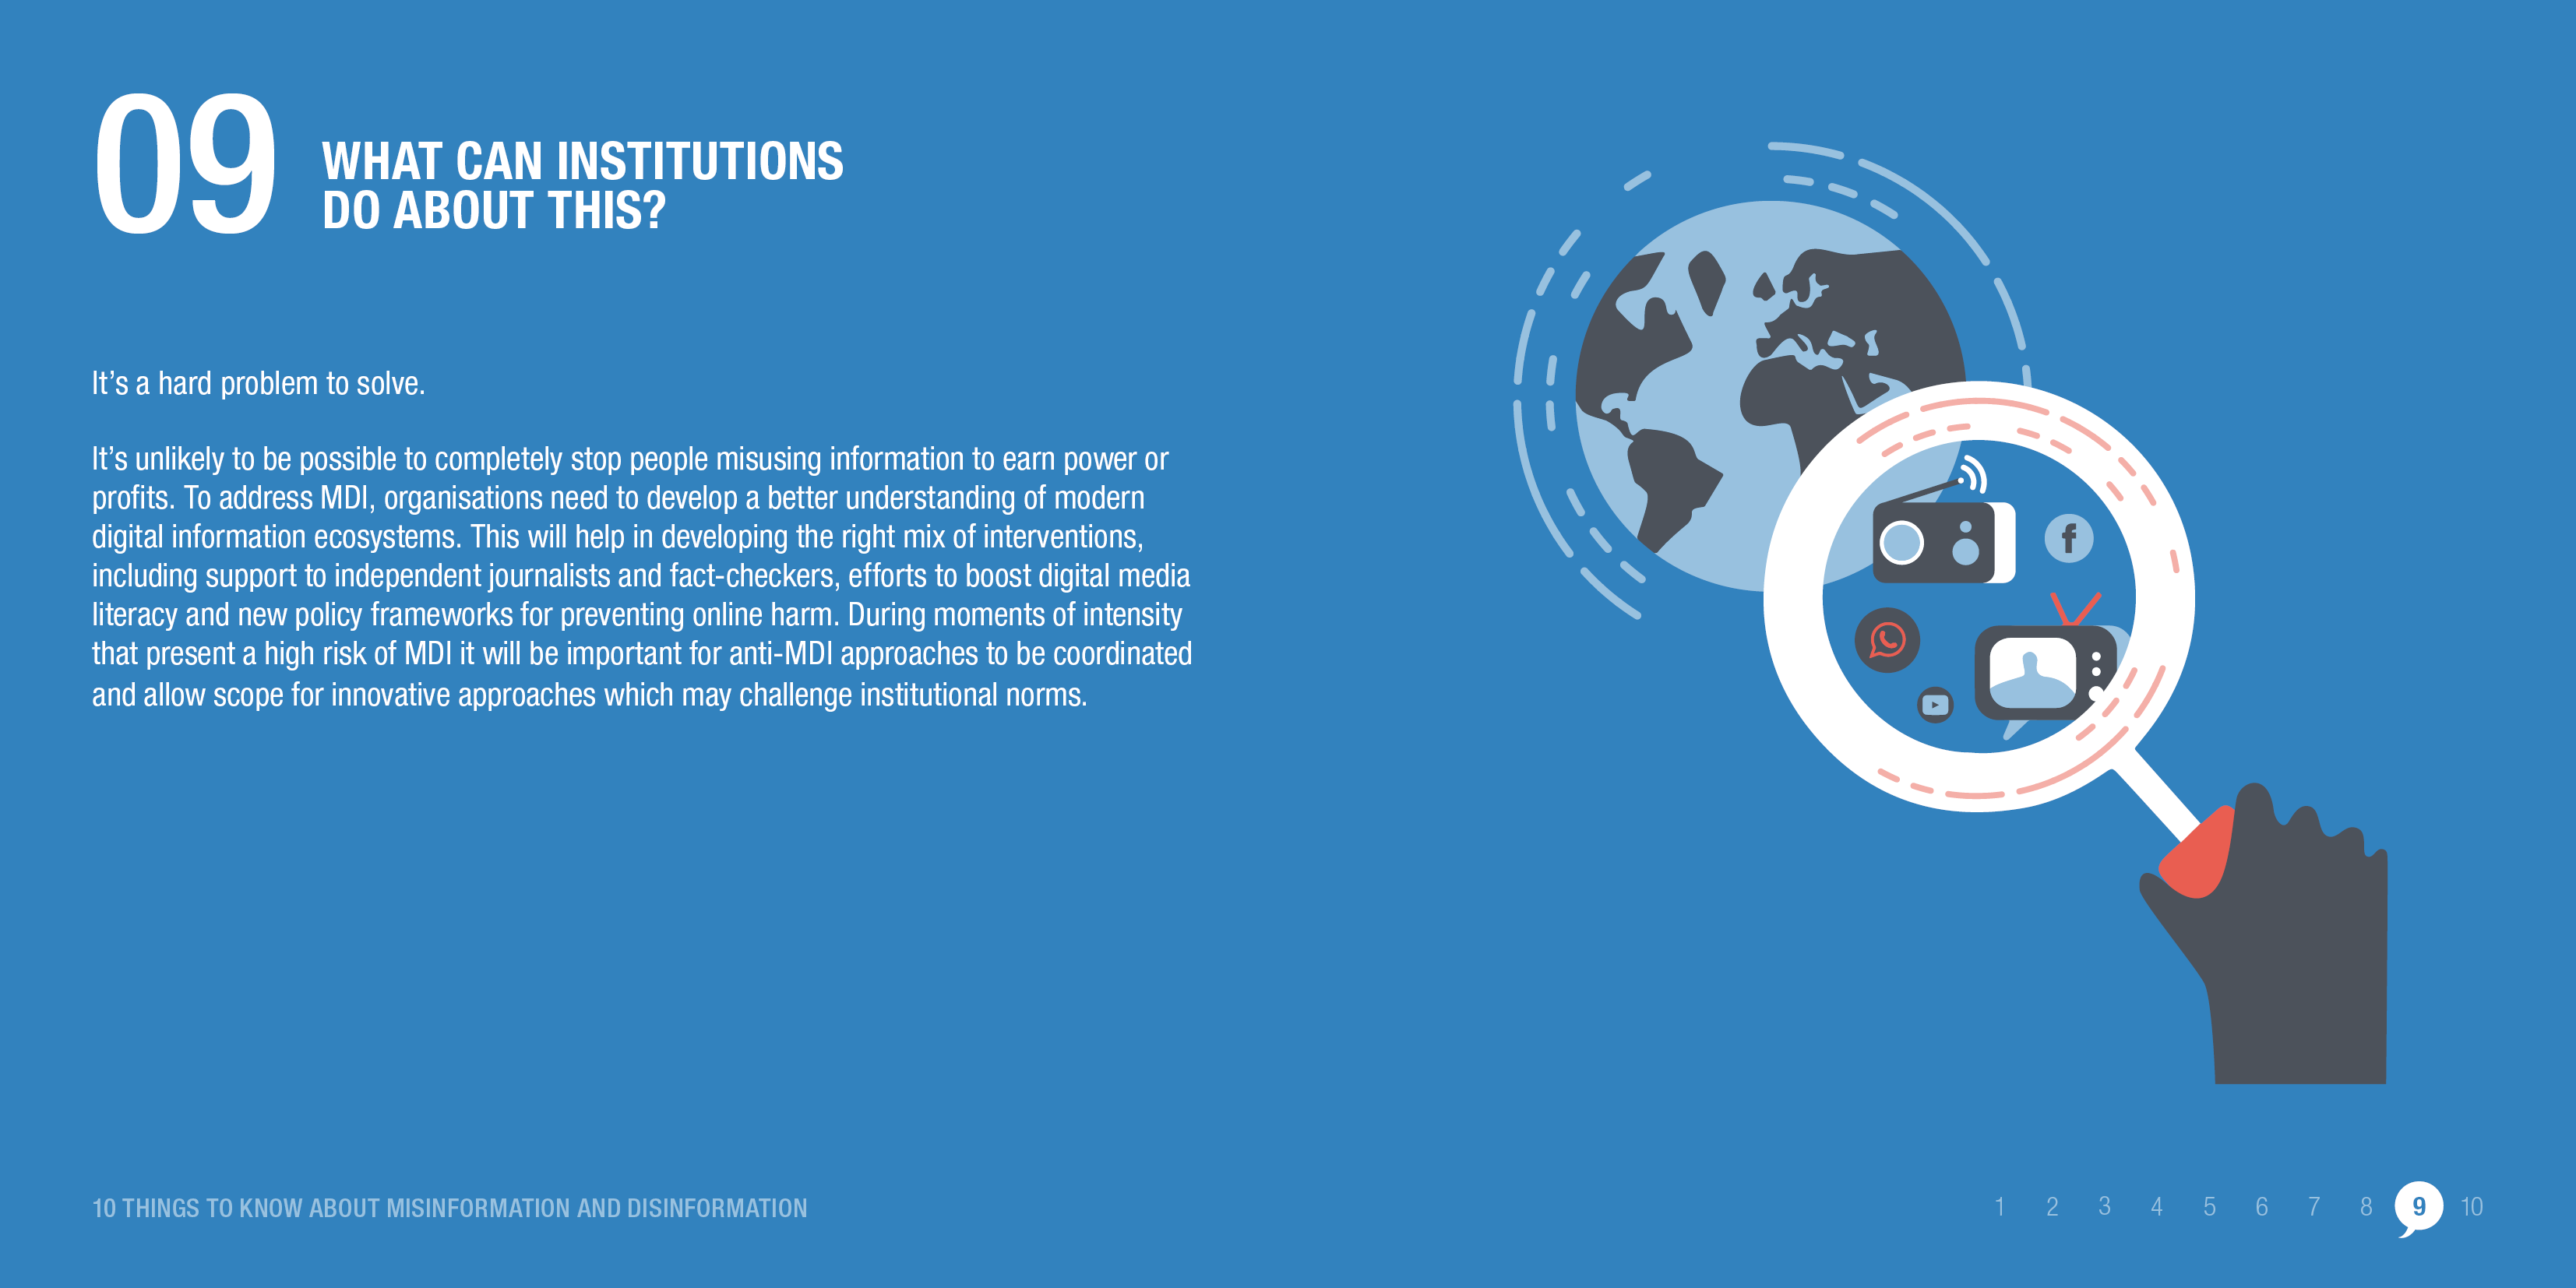 Misinformation and disinformation are complex problems that require innovative solutions. © ODI 2020